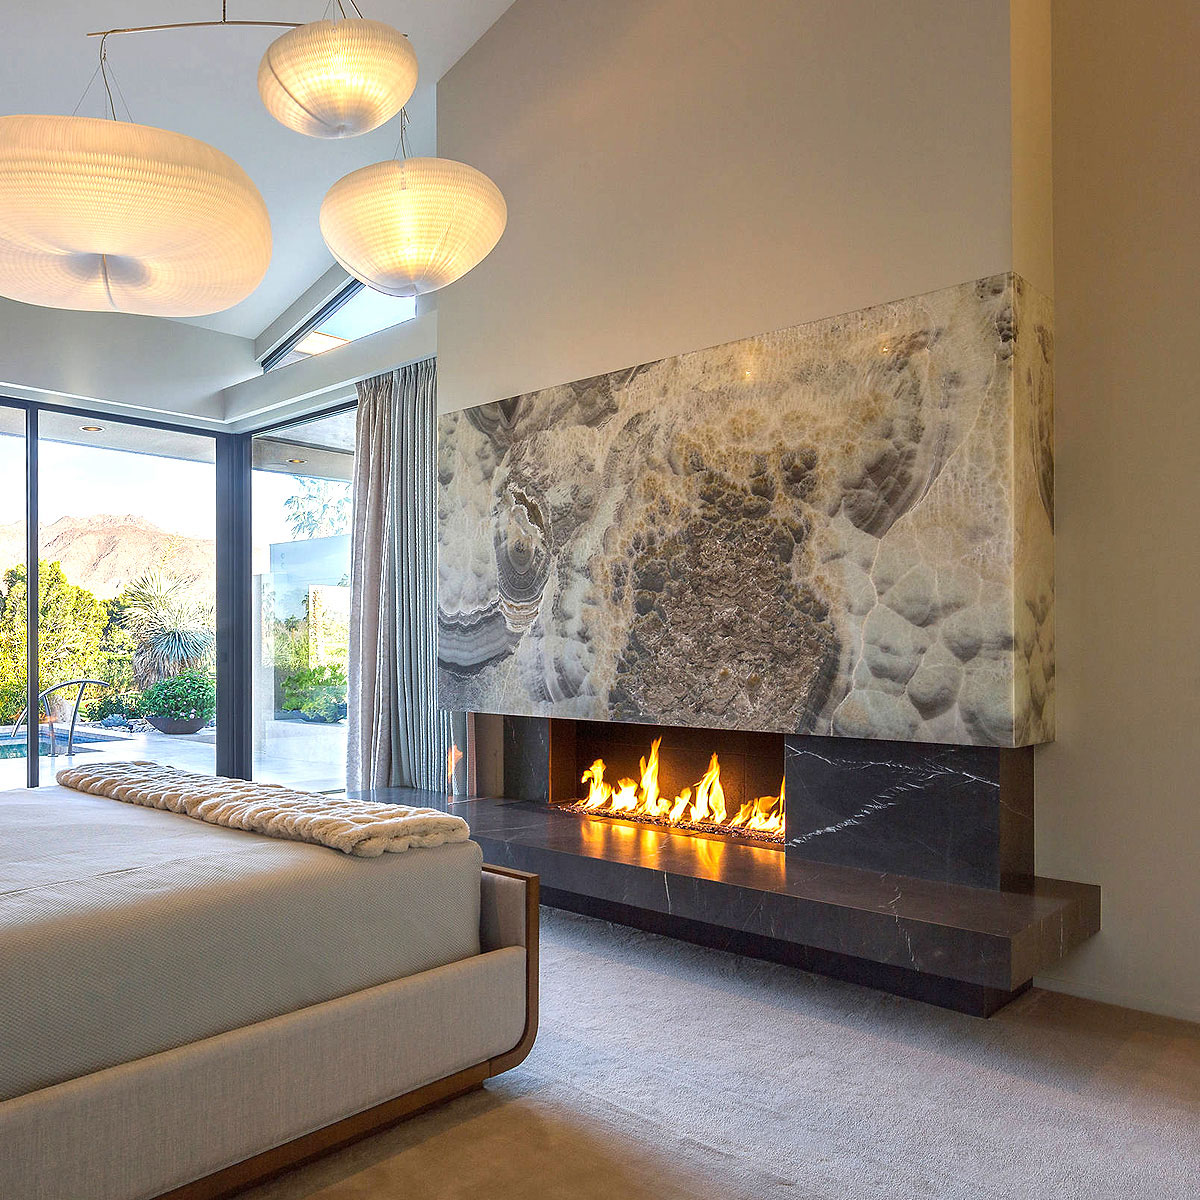 17 Onyx Fireplace Ideas White Gold Brown Onyx Tips Advice